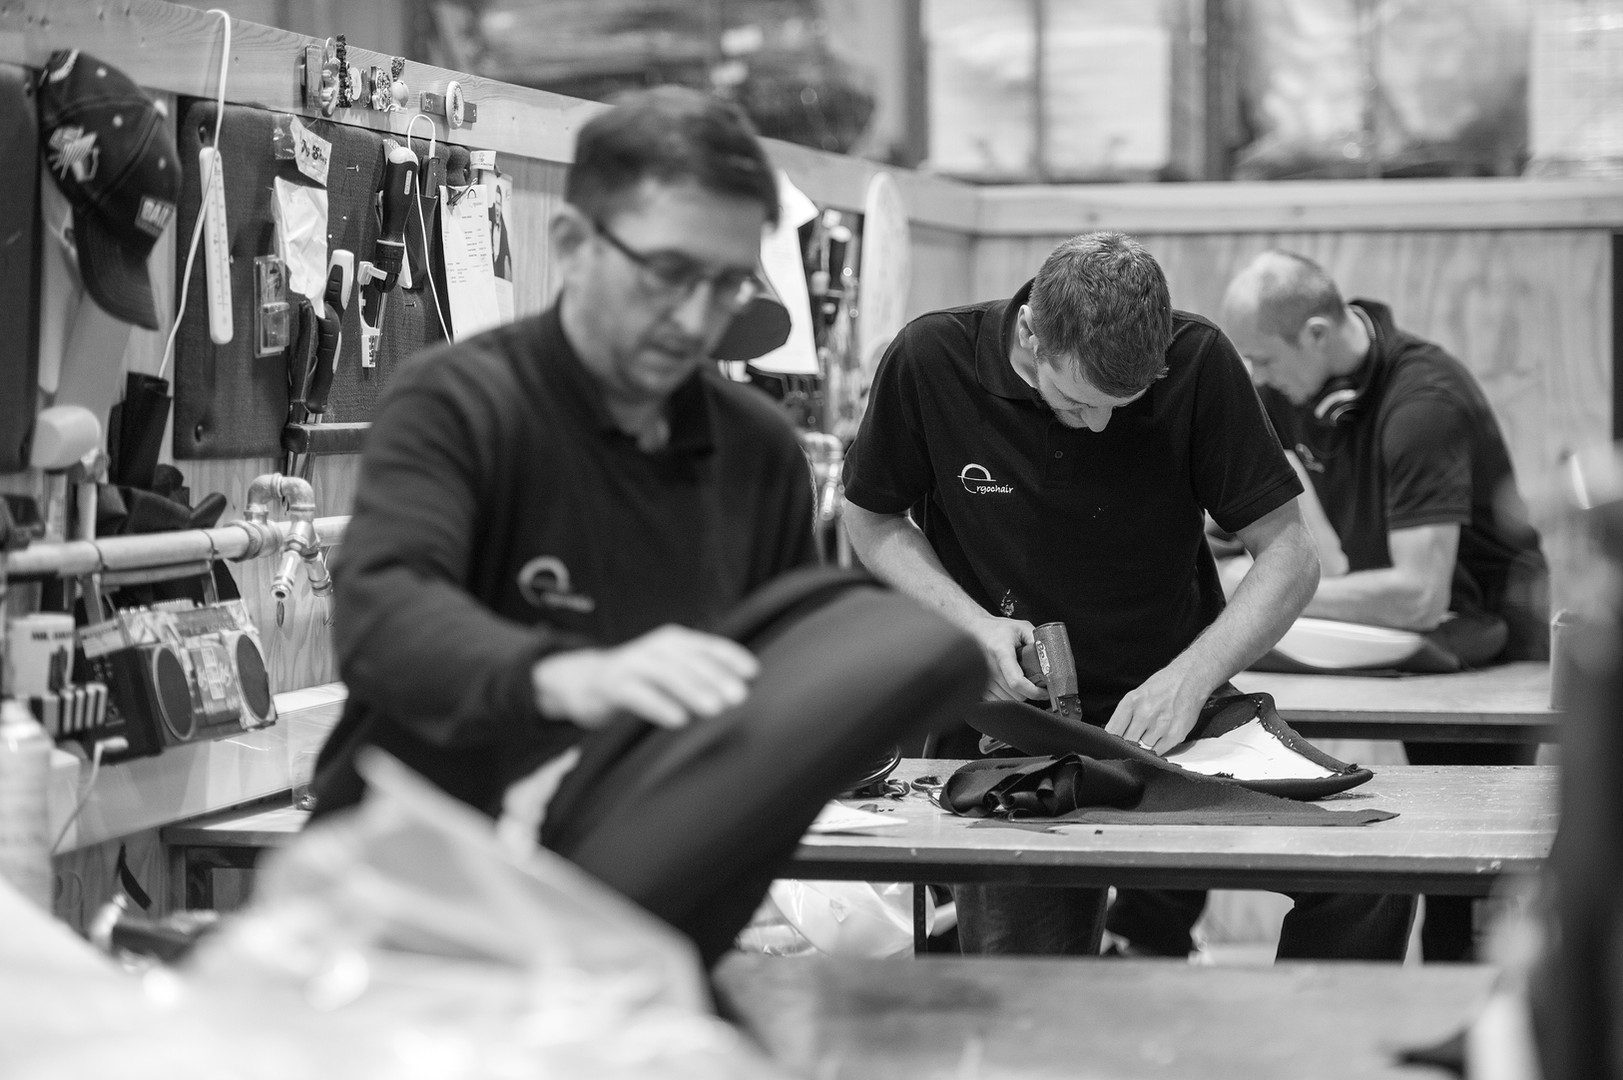 Production line of craftsman working on bespoke chairs.